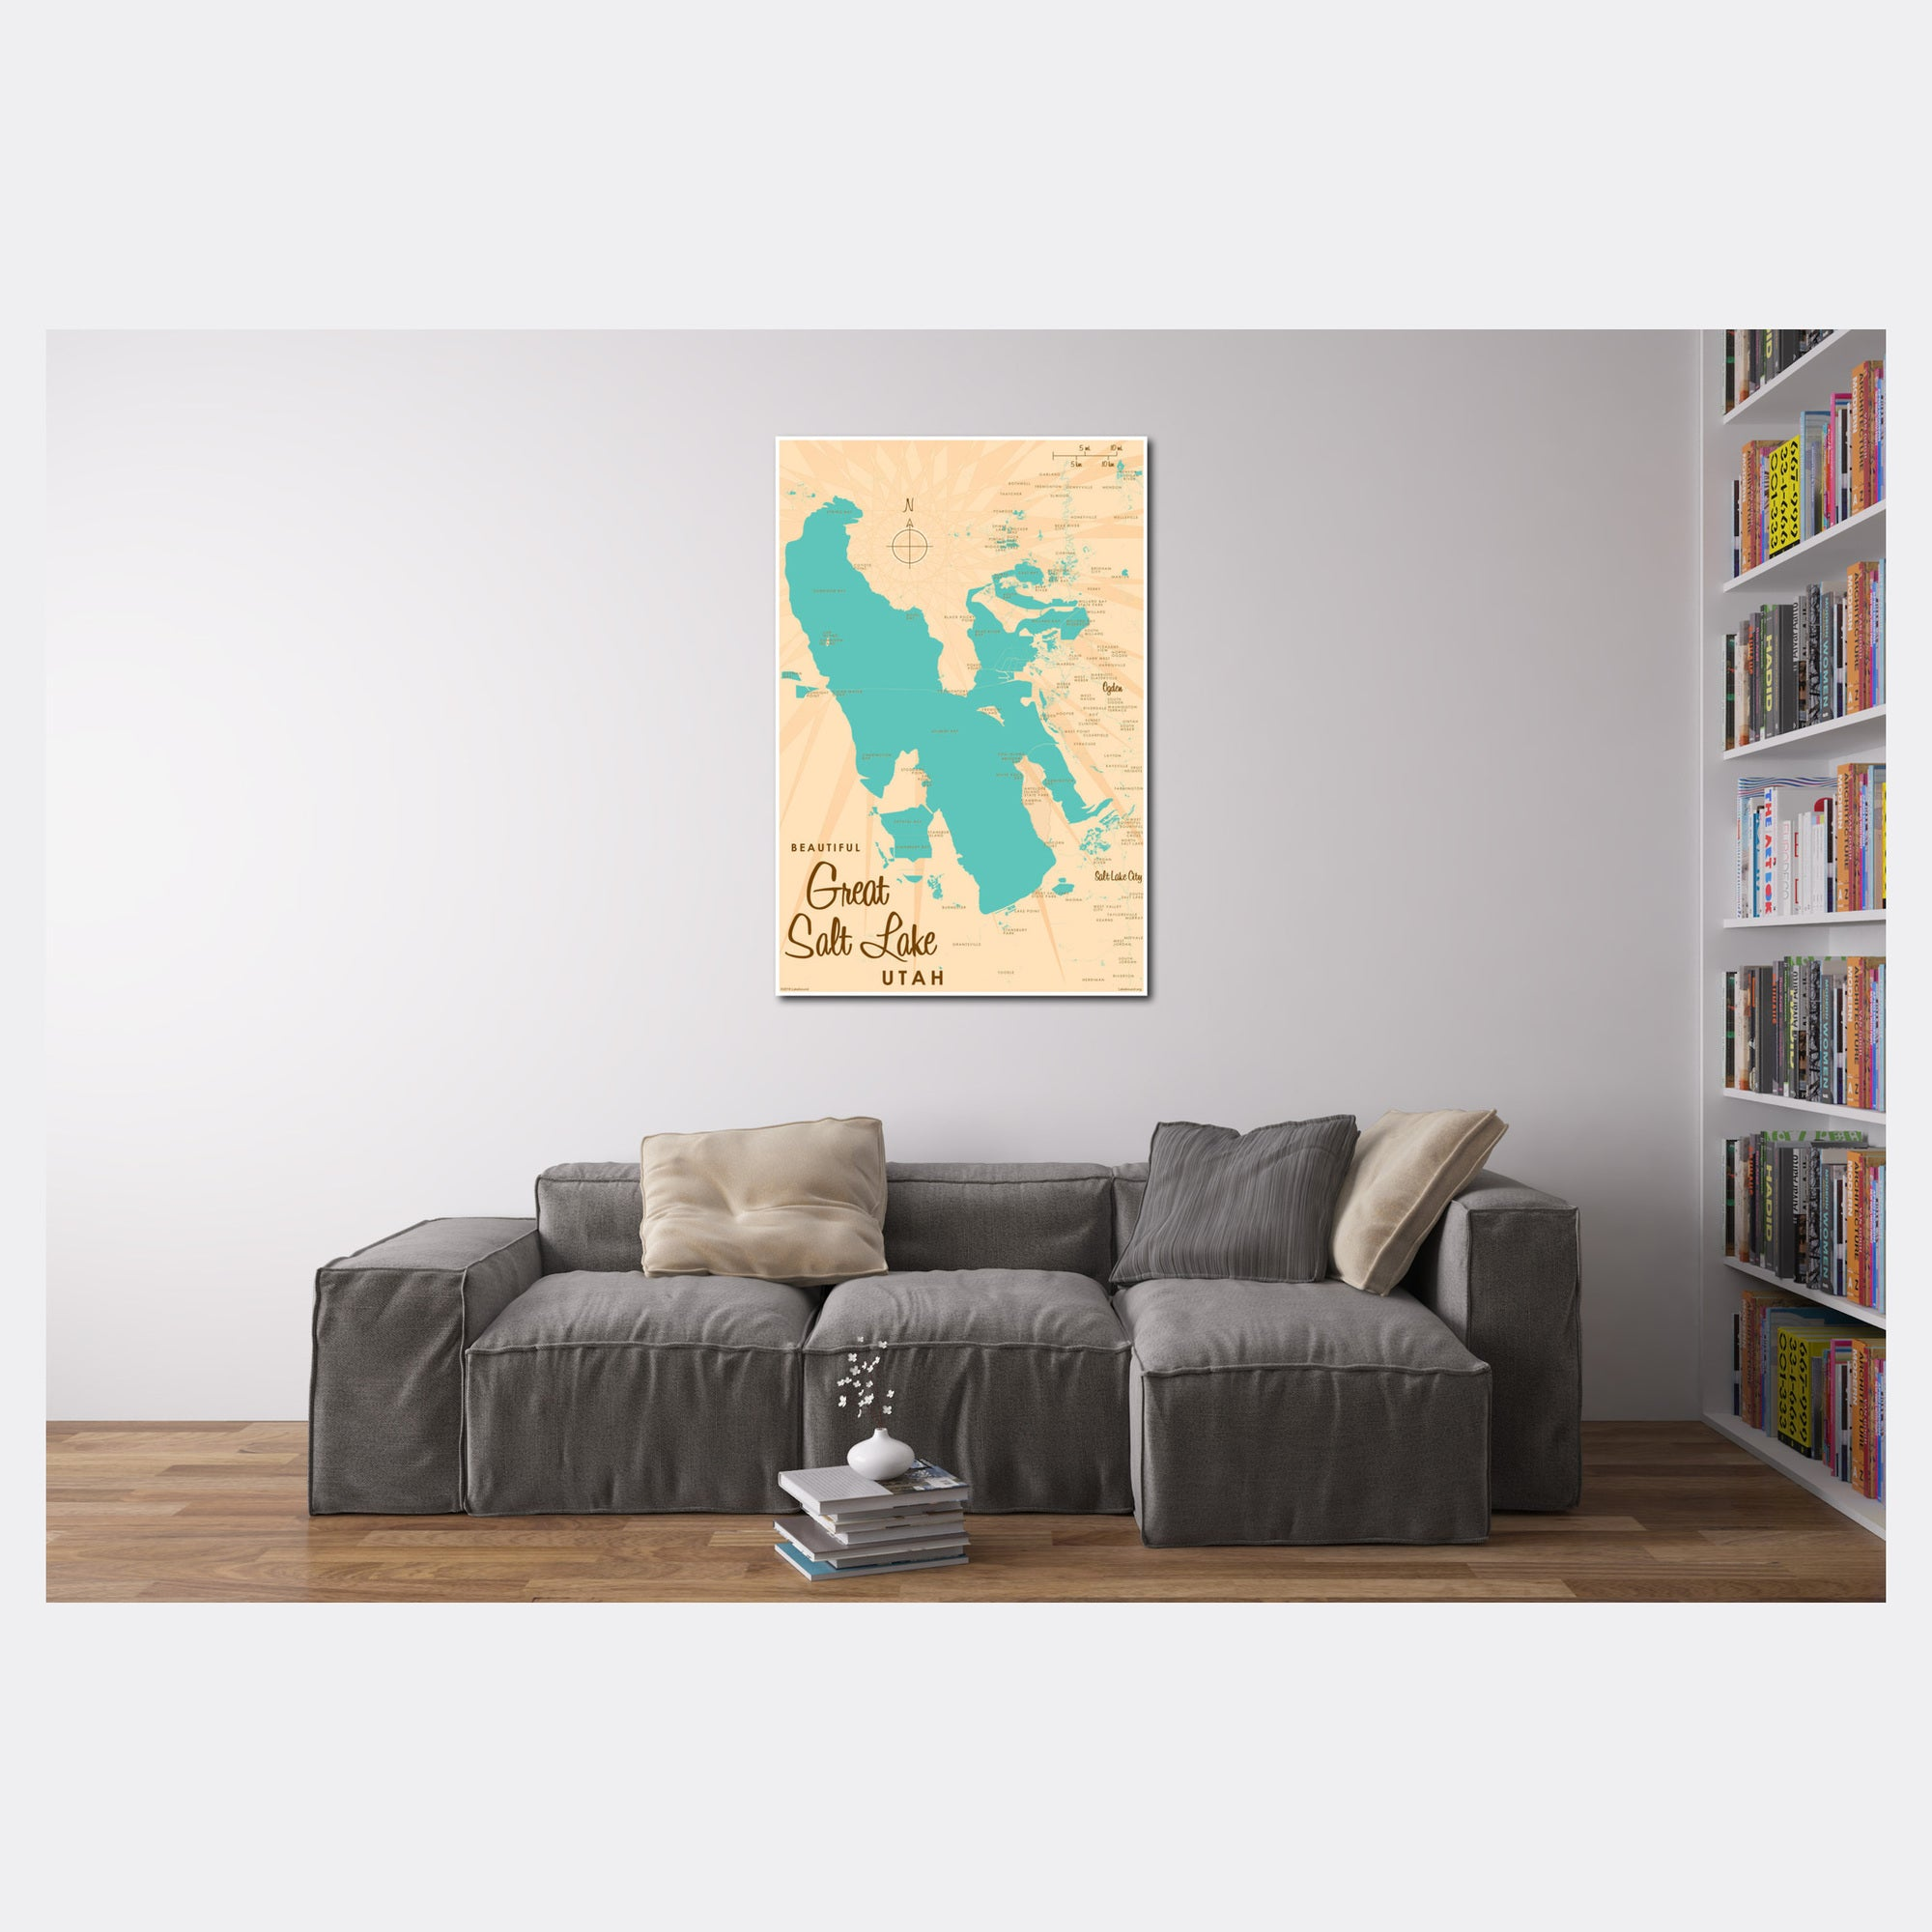 Great Salt Lake Utah, Paper Print